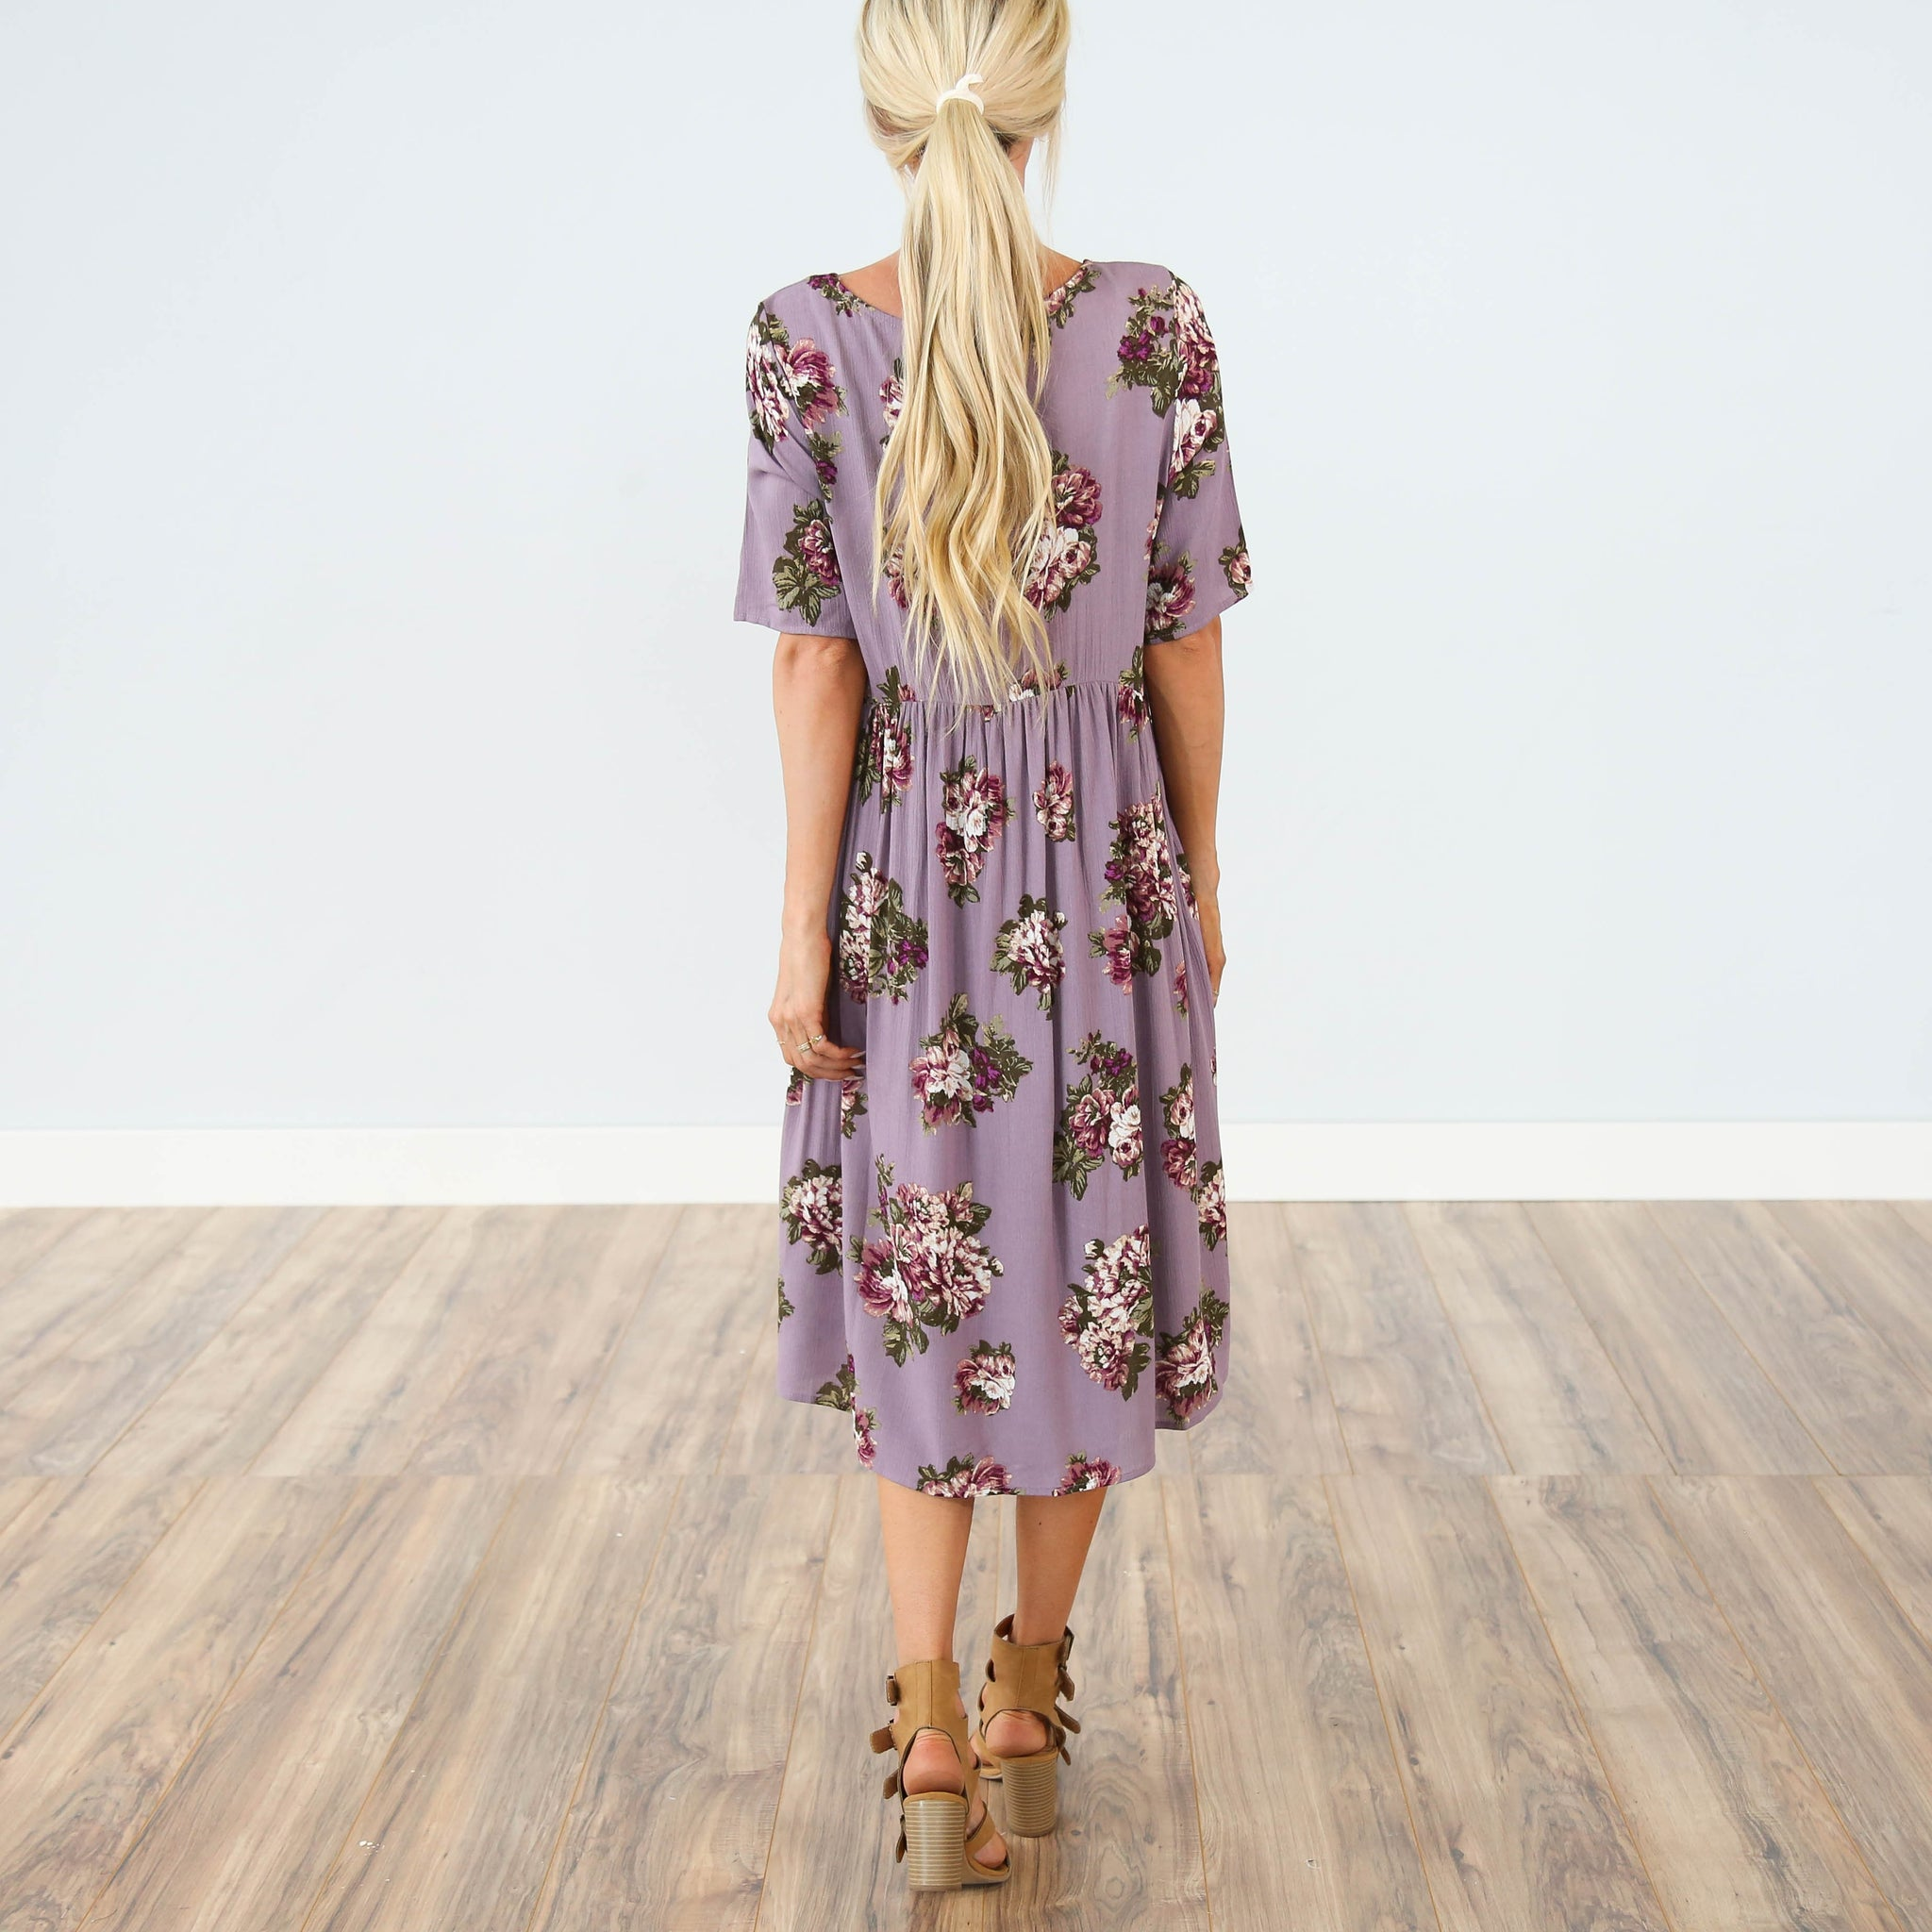 Tatum Floral Dress